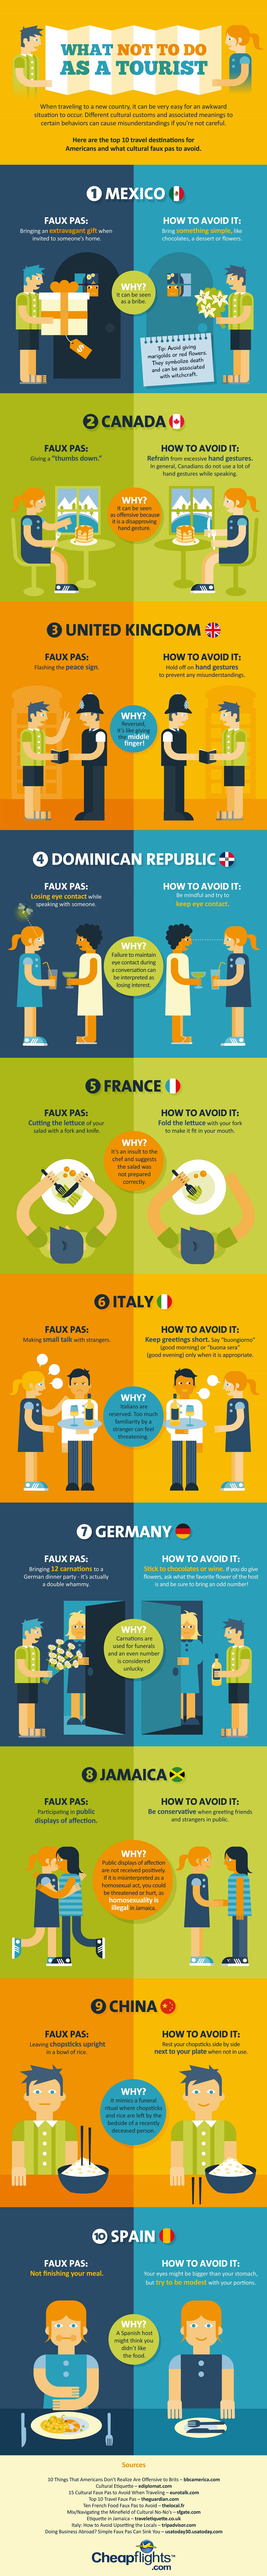 infographic: What Not To Do As A Tourist